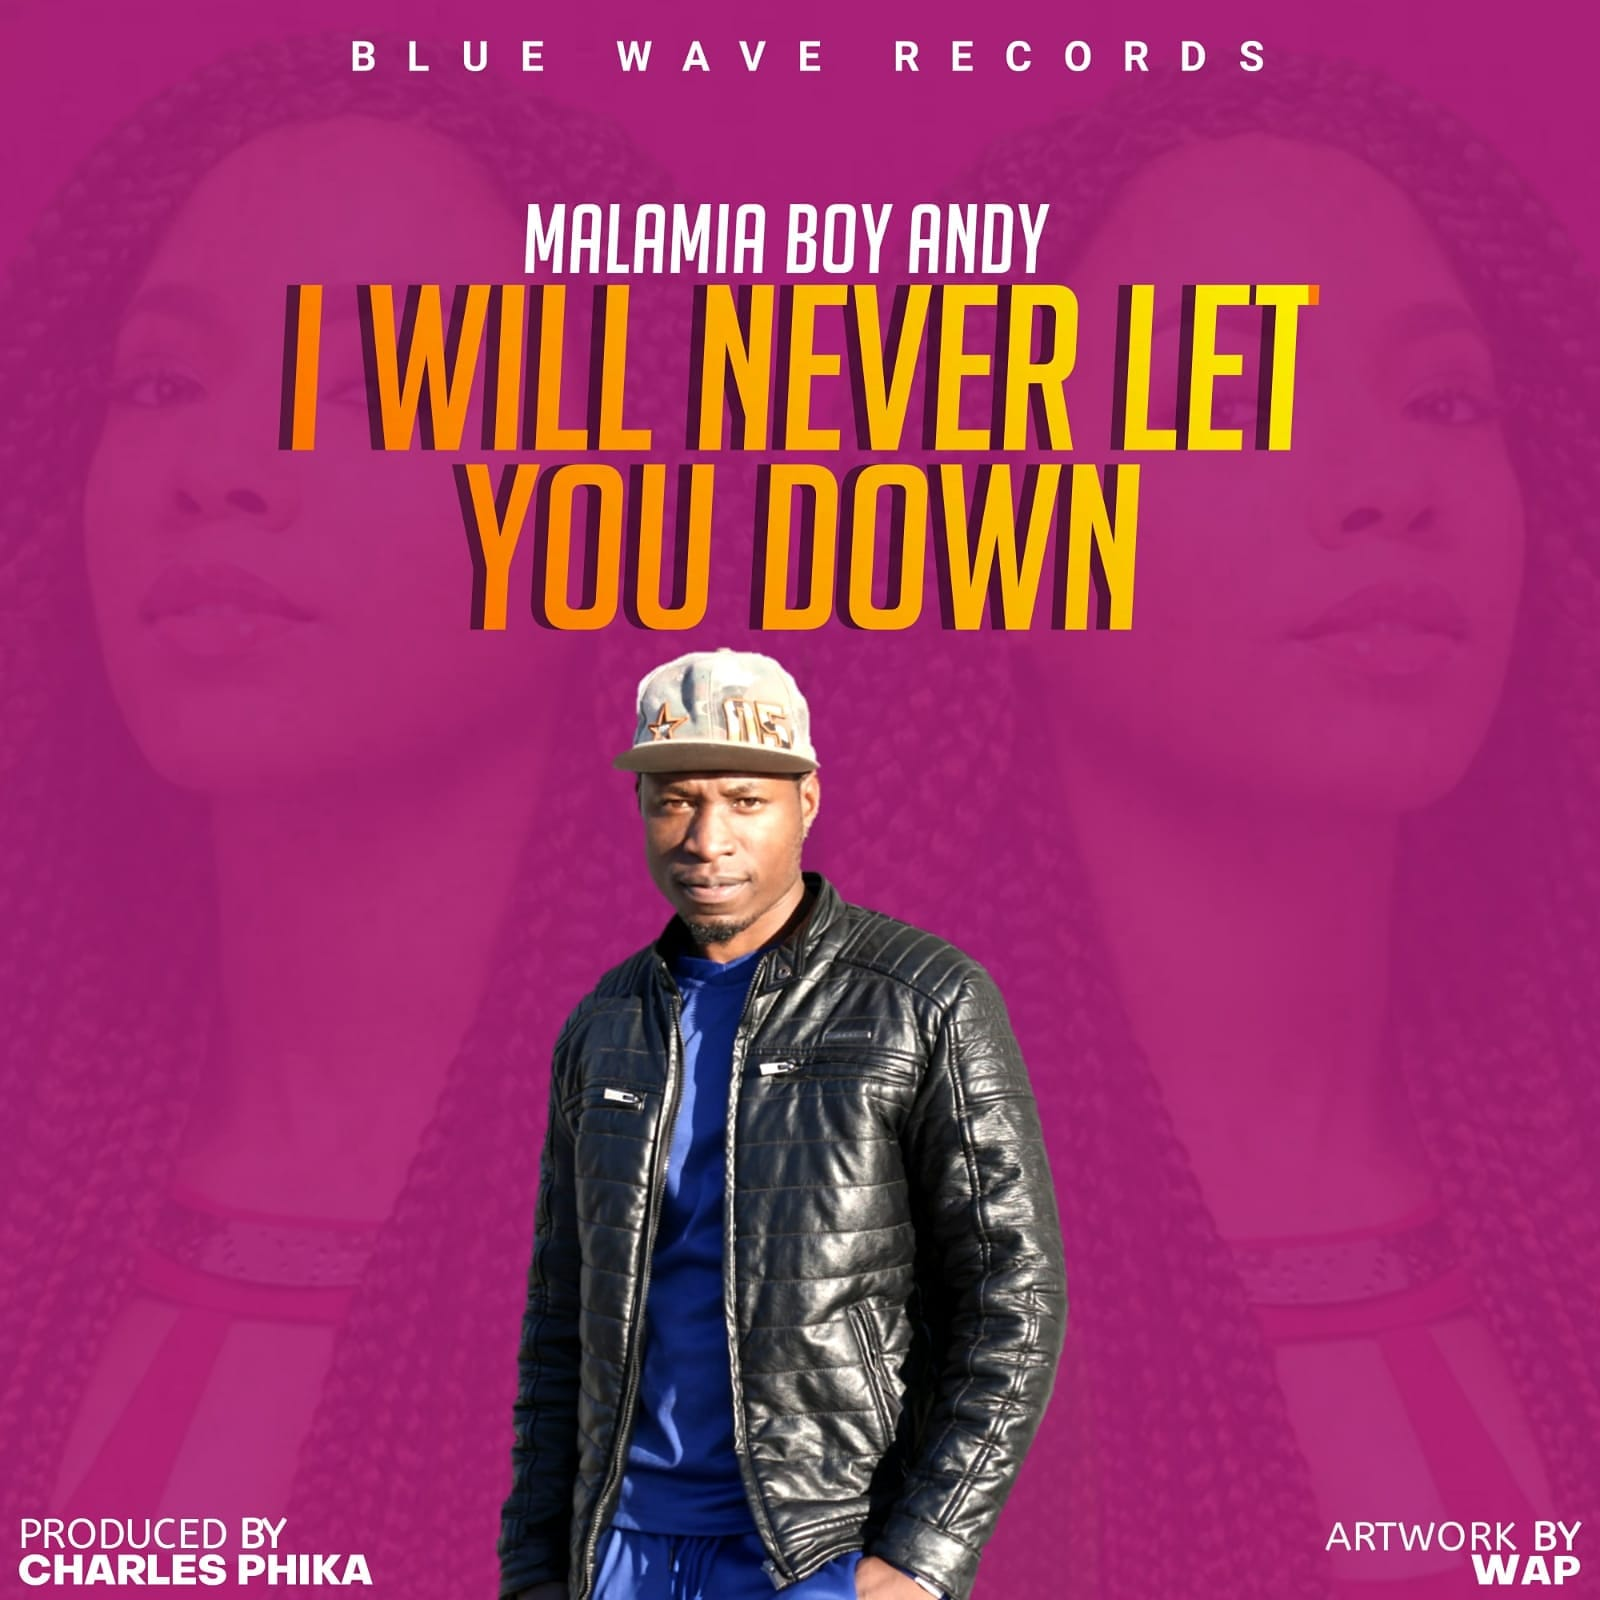 Malamia-Boy-Andy-I-WILL-NEVER-LET-U-DOWN  Prod By Charles phika,